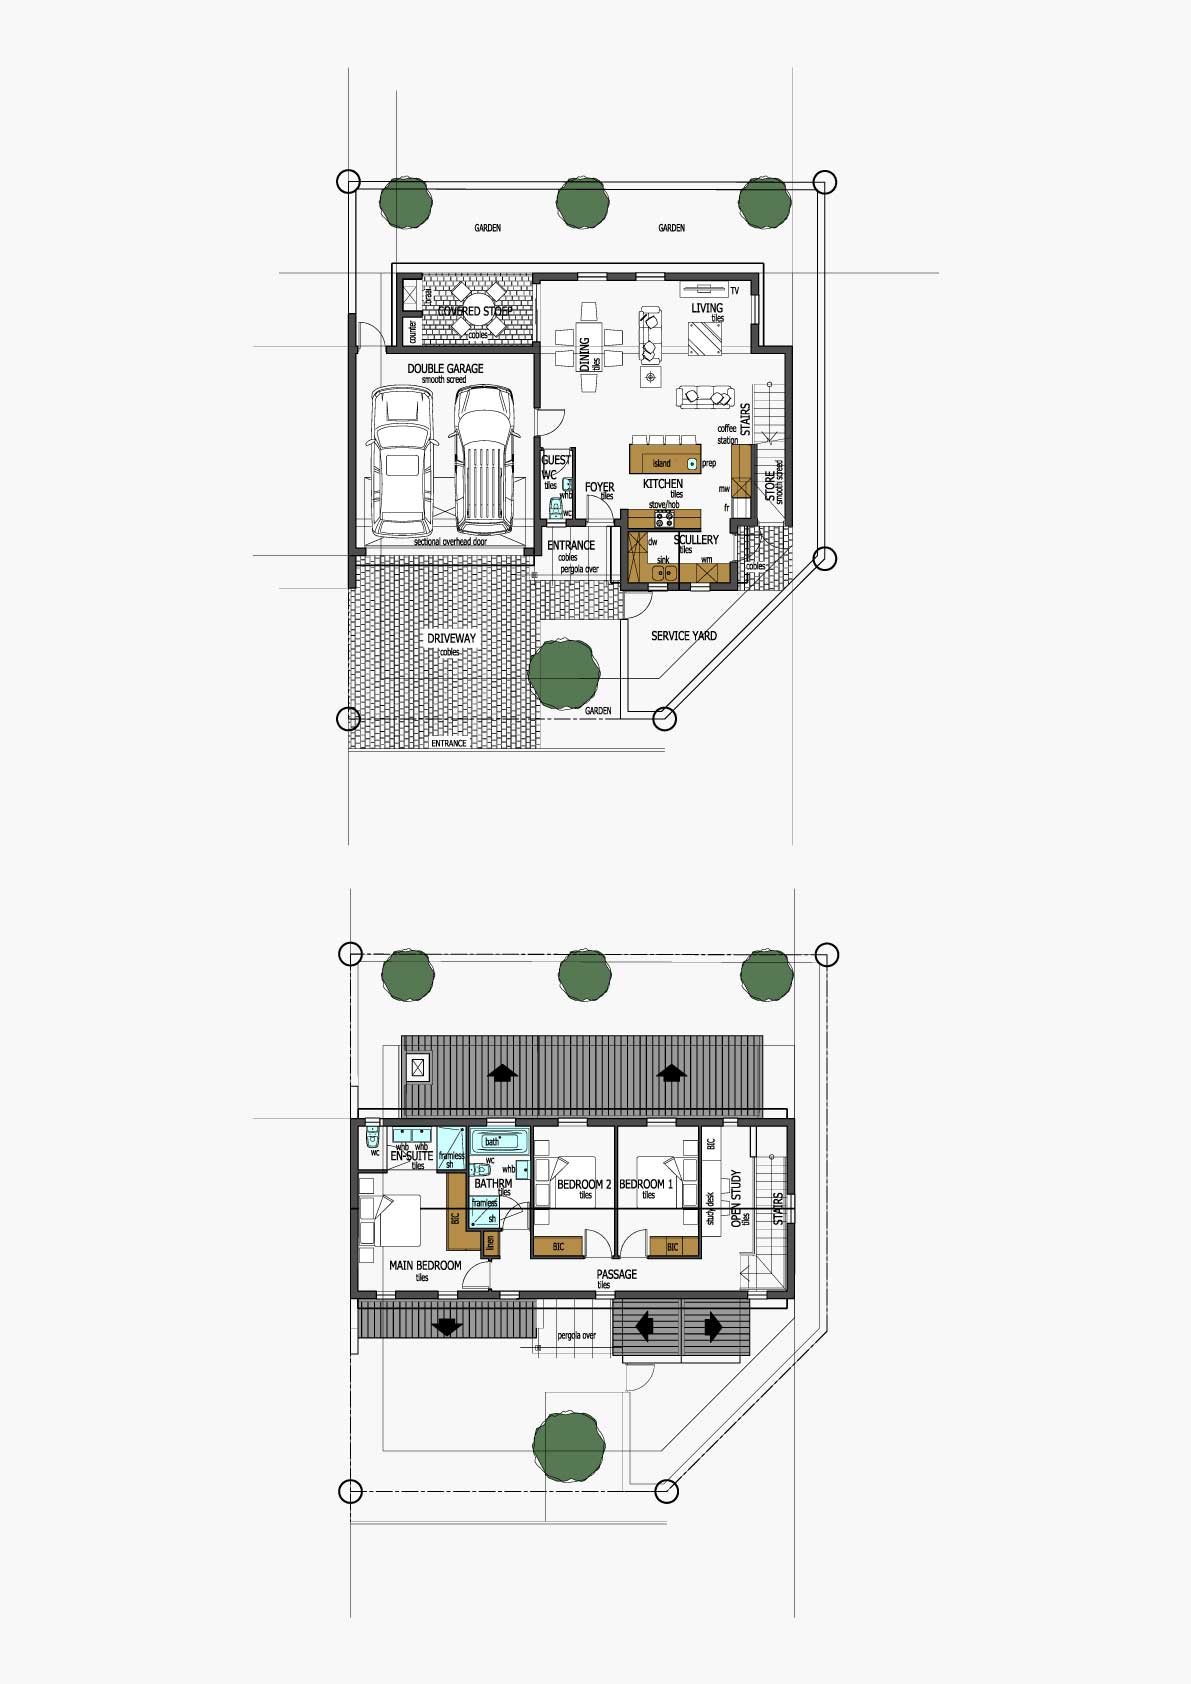 Homes Unit Layout - Type J